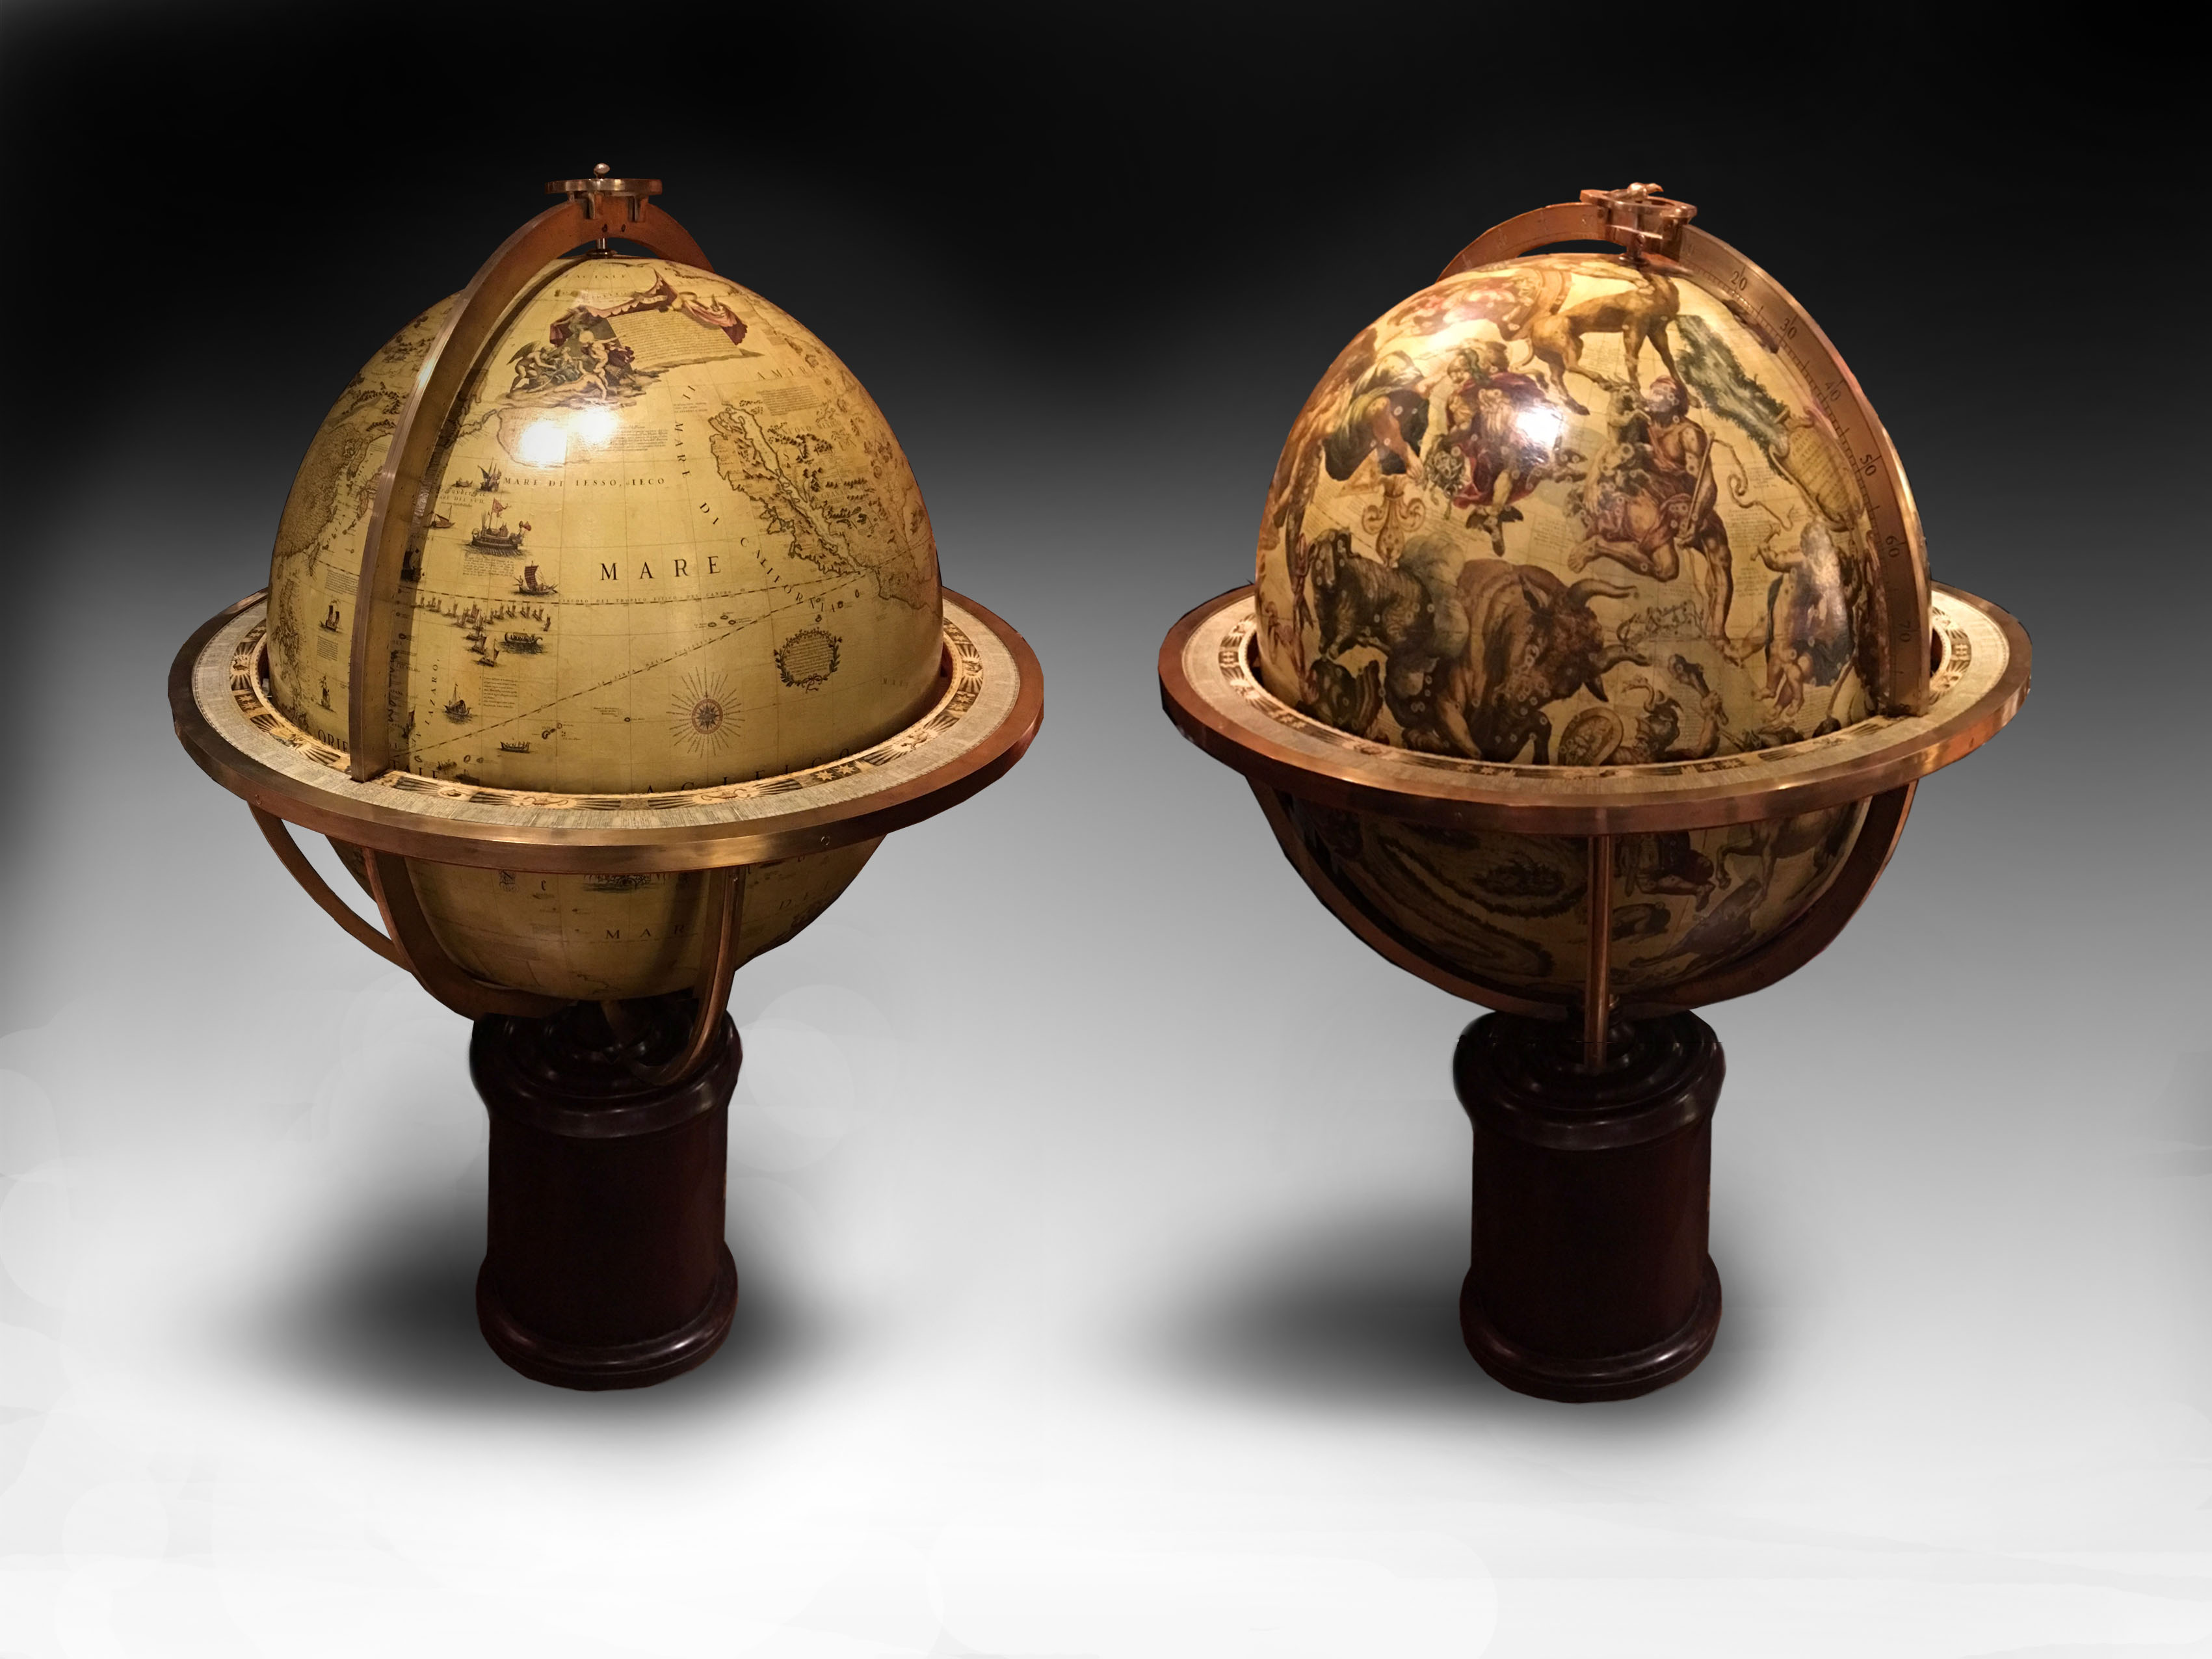 coronelli globes with pedestal bases made for Assouline